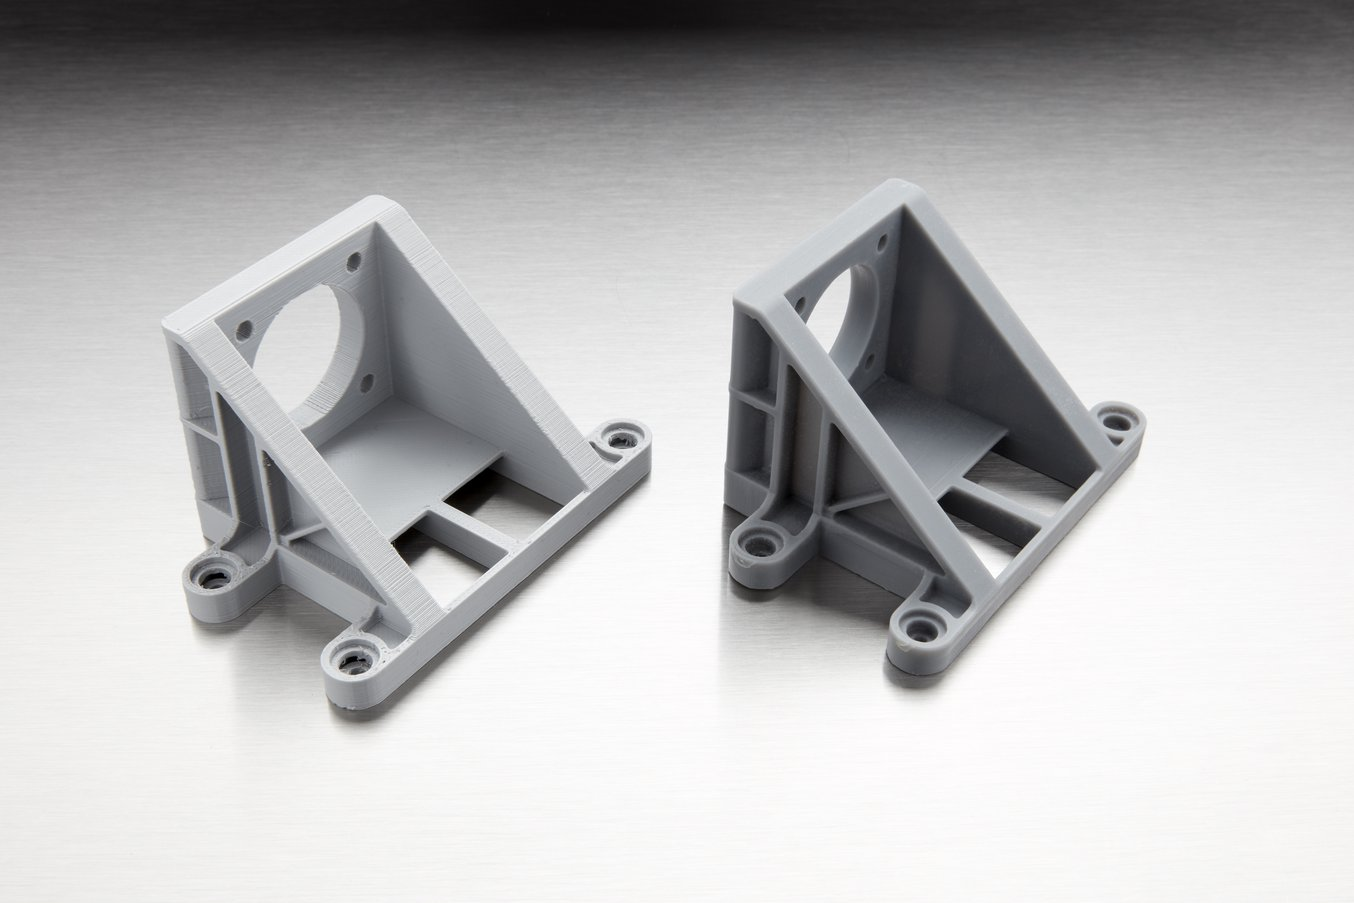 The difference in quality is less visible on relatively simple parts. However, SLA parts are dense and isotropic, which makes them better suited for many engineering and manufacturing applications (FDM part on the left, SLA part on the right).